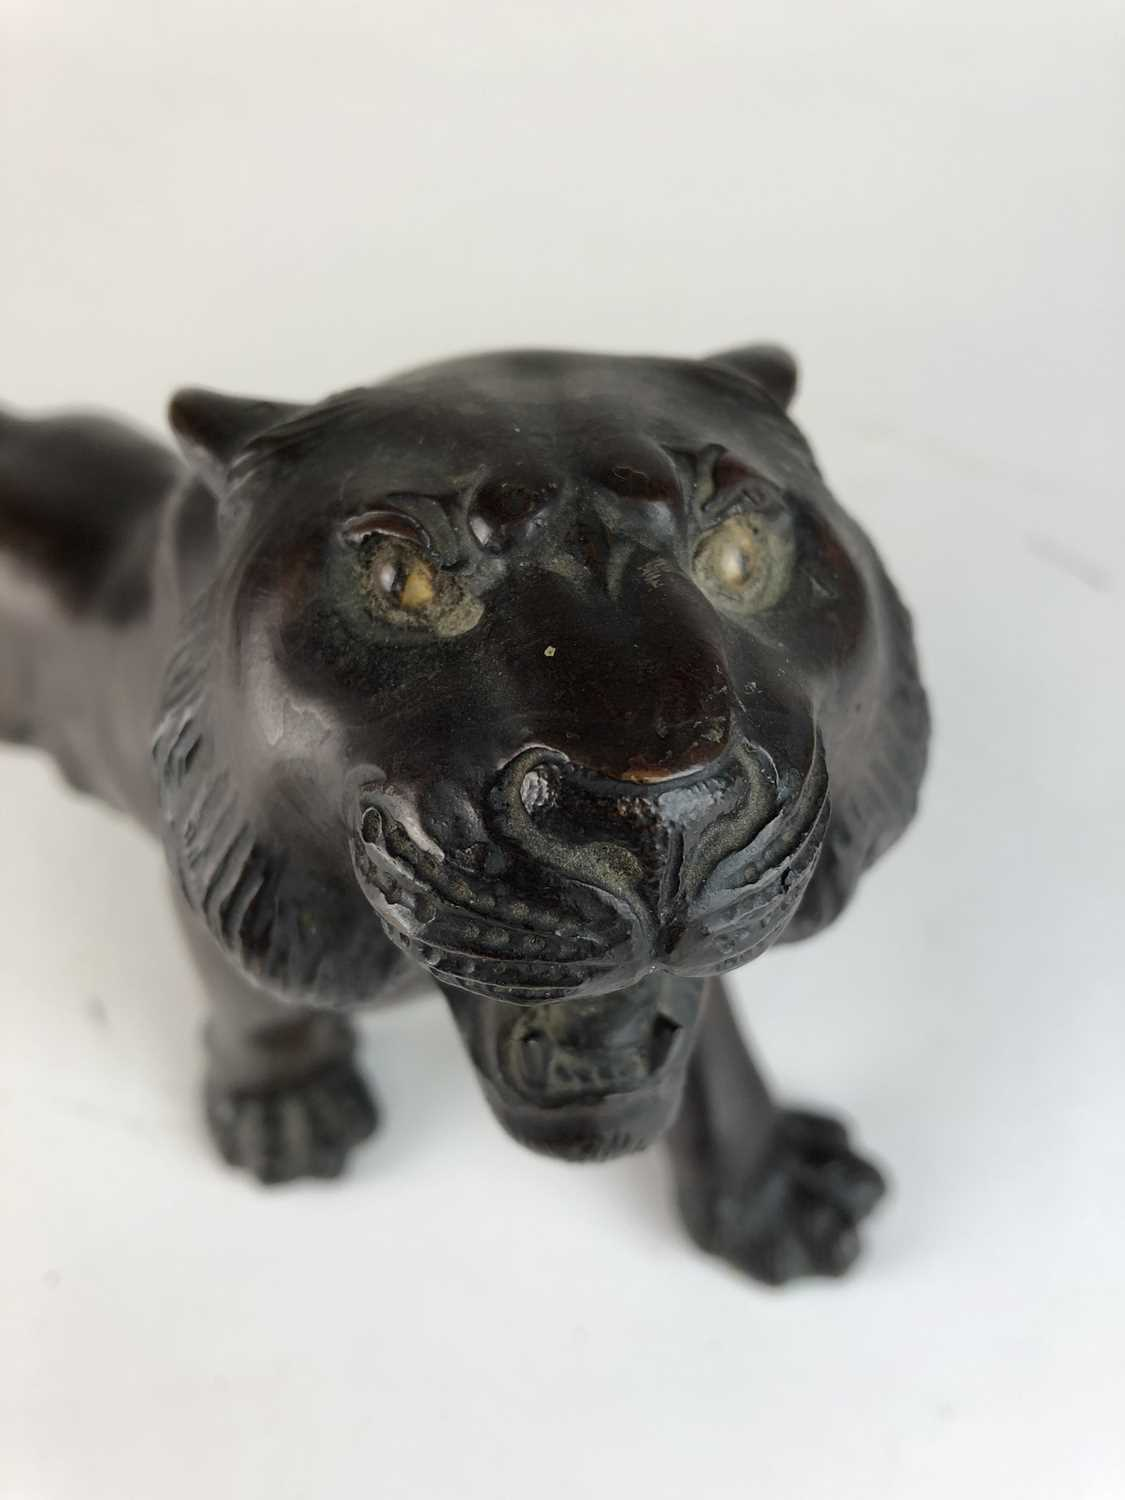 A Japanese bronze figure of a tiger, Meiji period - Image 6 of 6